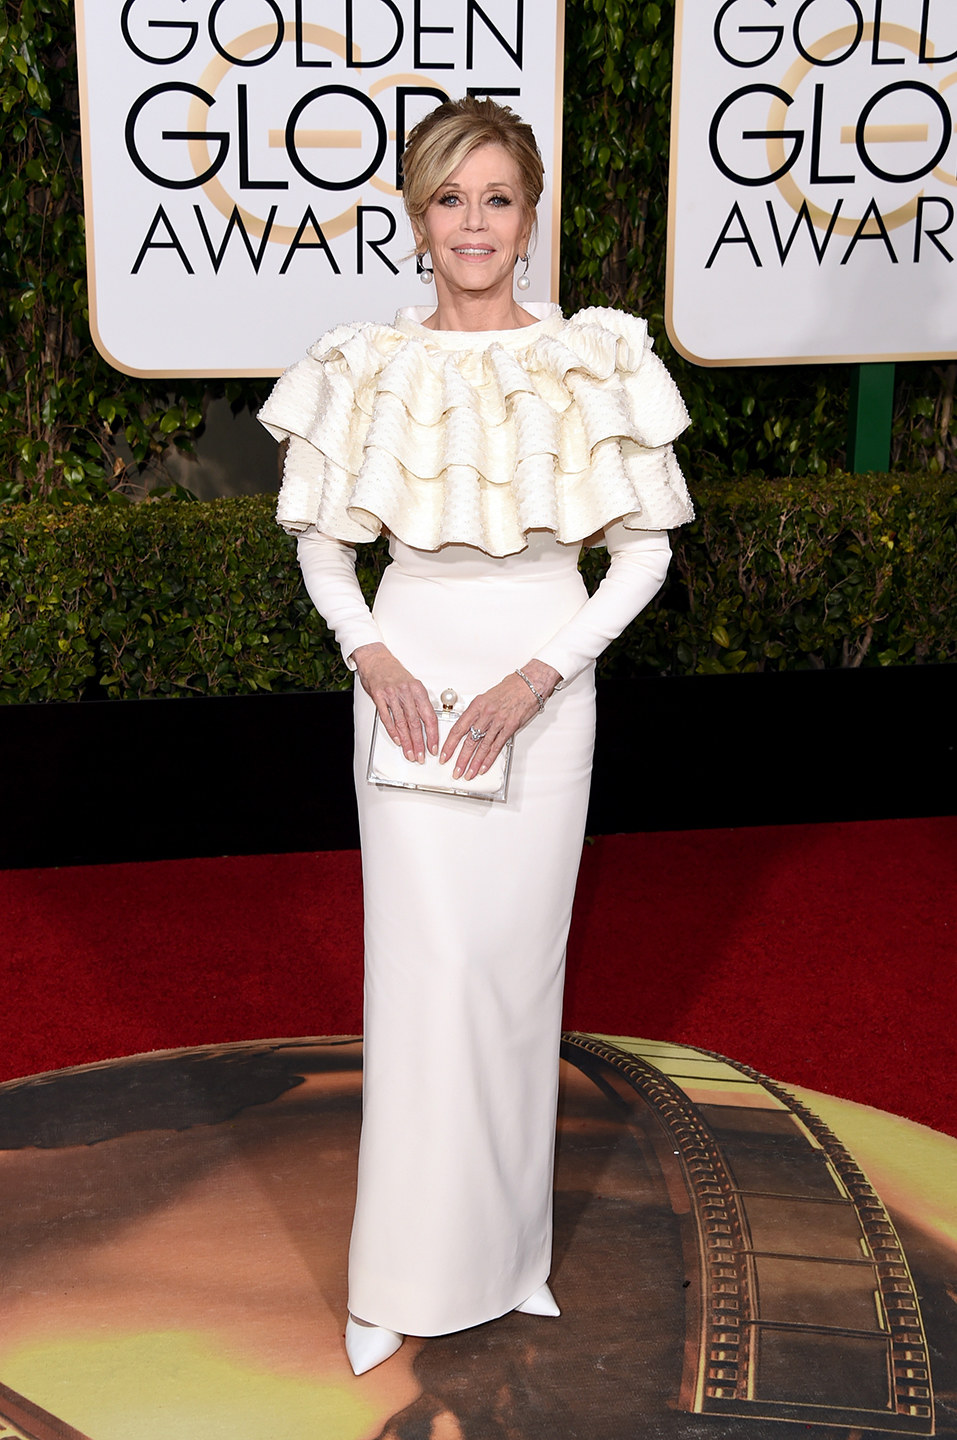 golden-globes-2016-jane-fonda.jpg (340.53 Kb)